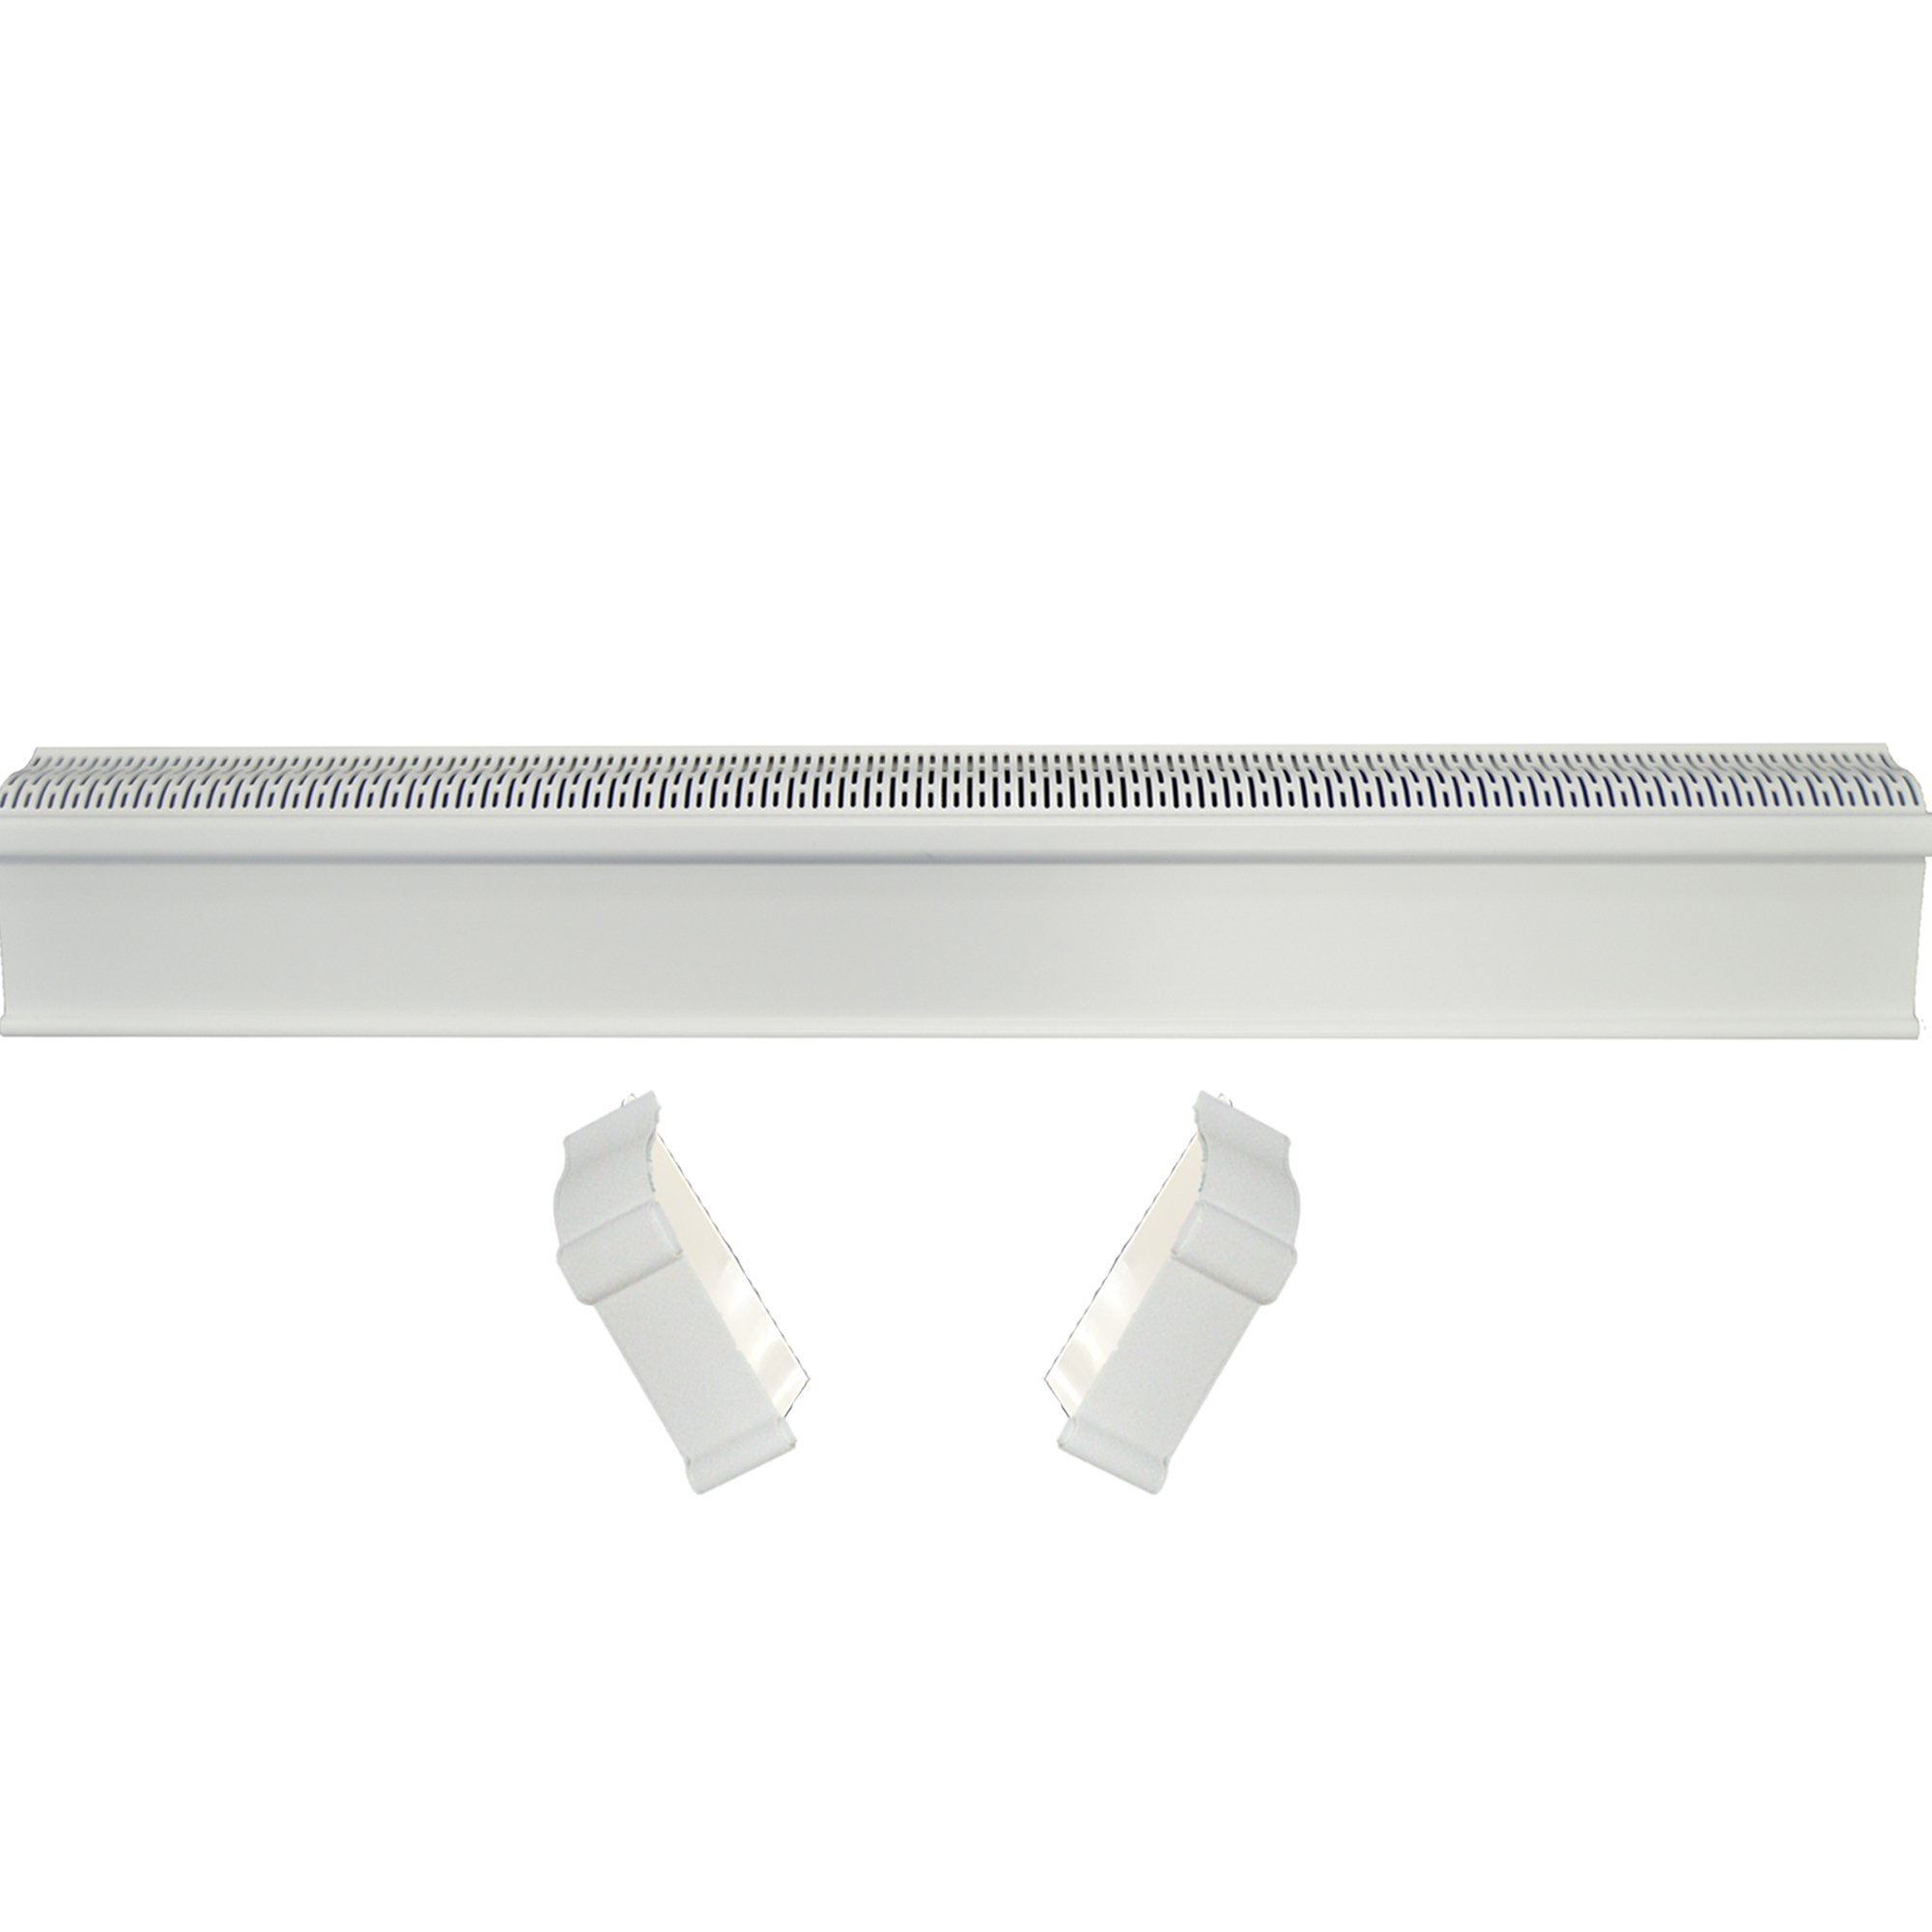 Baseboard Heater Cover COMPLETE SET - INCLUDES Right and Left End Caps | Hot Water, Hydronic Heater Slant Fin Baseboard Cover Enclosure Replacement Kit for Home - Rust-Proof Plastic - 2' White